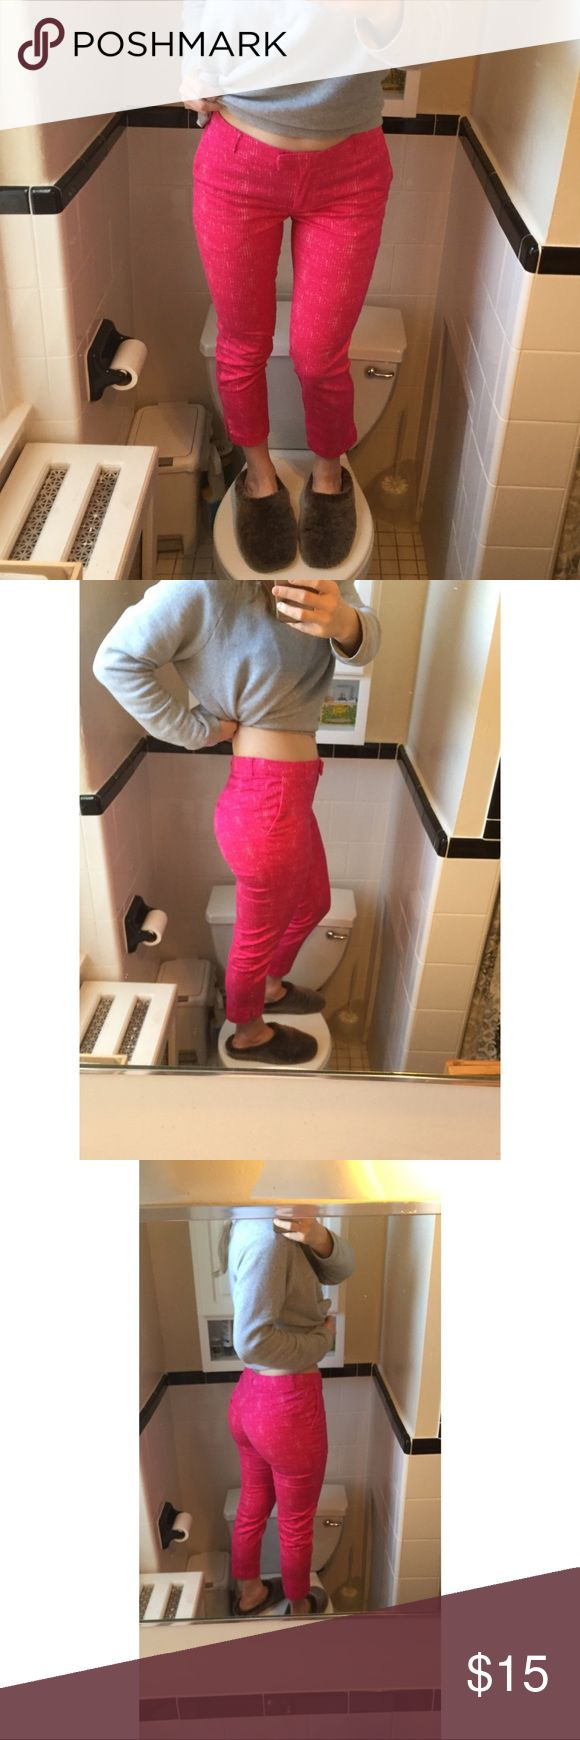 """HAWT PINK YAAAAS KWEEN H&M PANTS These are super flattering (aka gr8 booty) slacks, but they're way too bright for me. Make an offer or whateva. I need $$ to buy a full length mirror because this setup is just depressing.   (Exaggerated """"I swear I have a thigh gap"""" IG pose/cozy slippies not included.) H&M Pants"""